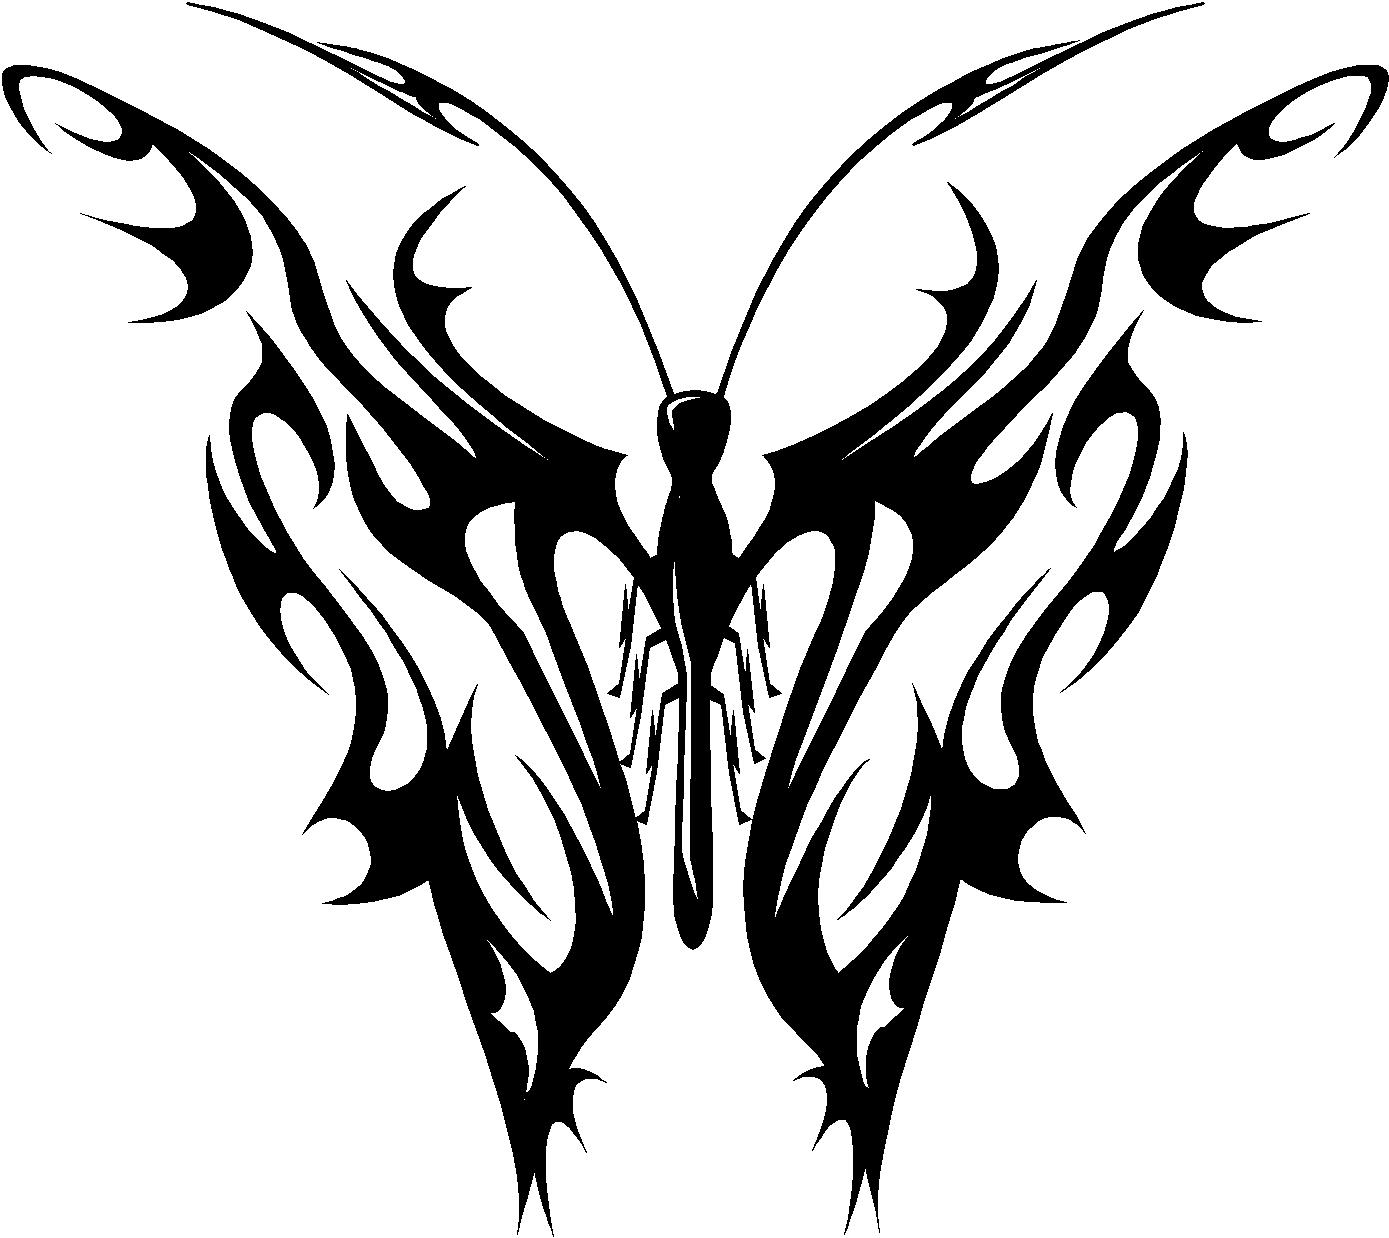 Butterfly Tribal Free Images At Clker